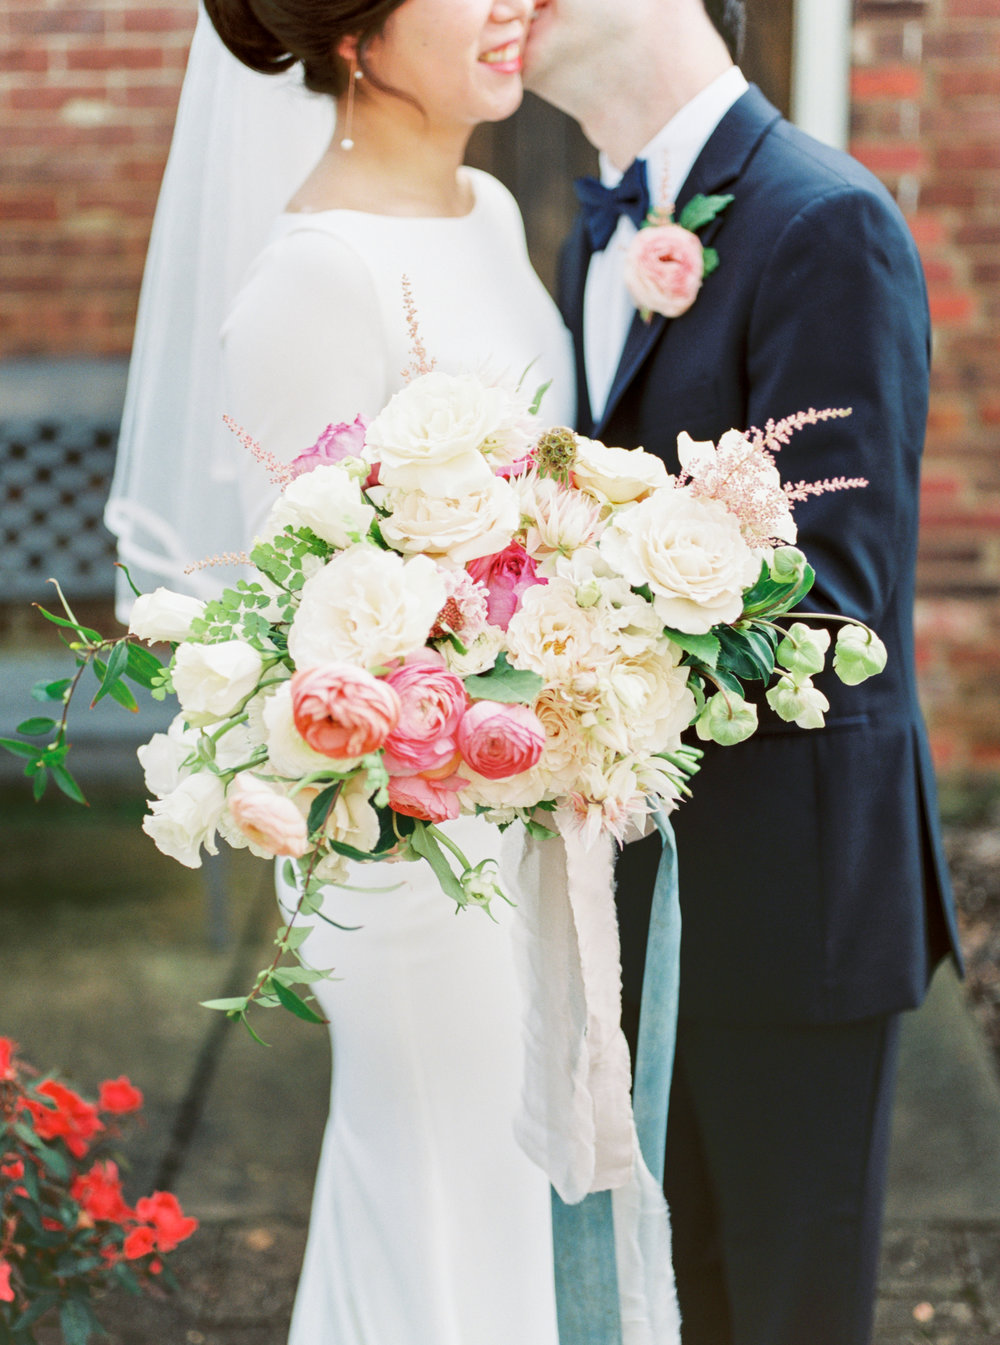 $450 - bridal bouquetGarden Roses, Hellebore, Ranunculus, Maidenhair Fern, Blush Astilbe, White Sweet Pea, White Lisianthus, Jasmine Vine, Blushing Bride, Cotton Candy ScabiosaFinishes: Double 4in/3yd Silk & Willow Silk Hand-Dyed Ribbon